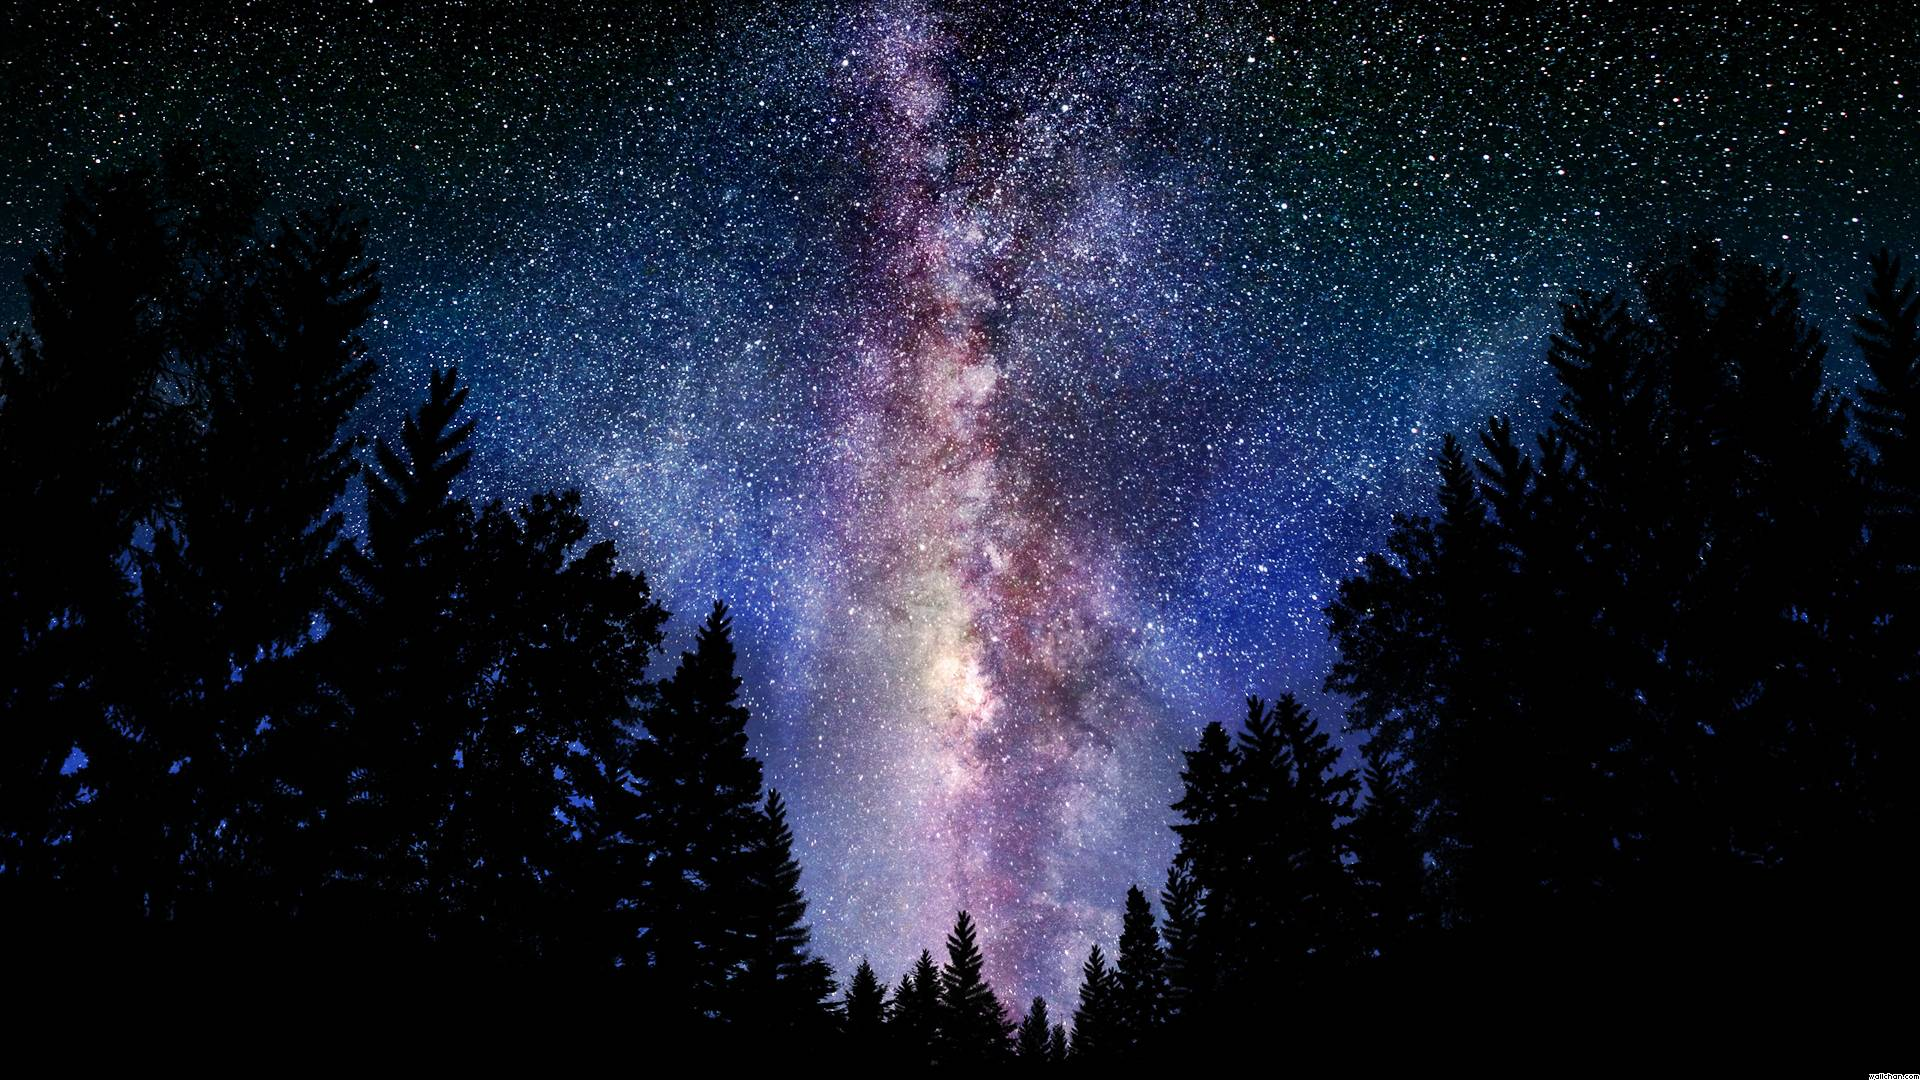 Milky Way Wallpapers 40 60457 Image HD Wallpapers